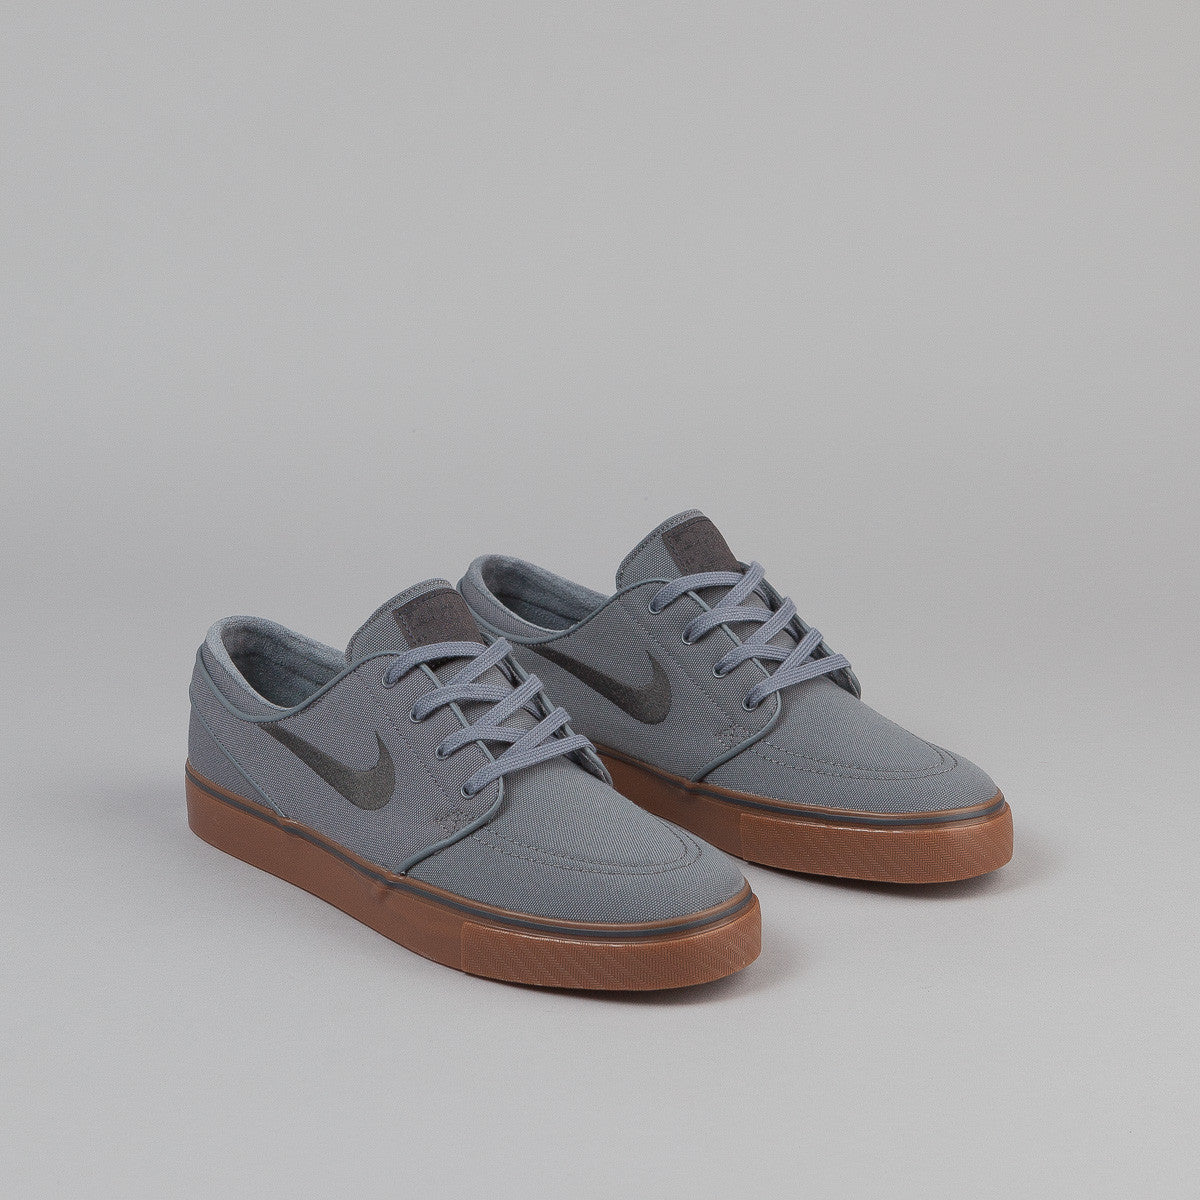 nike sb stefan janoski canvas shoes cool grey